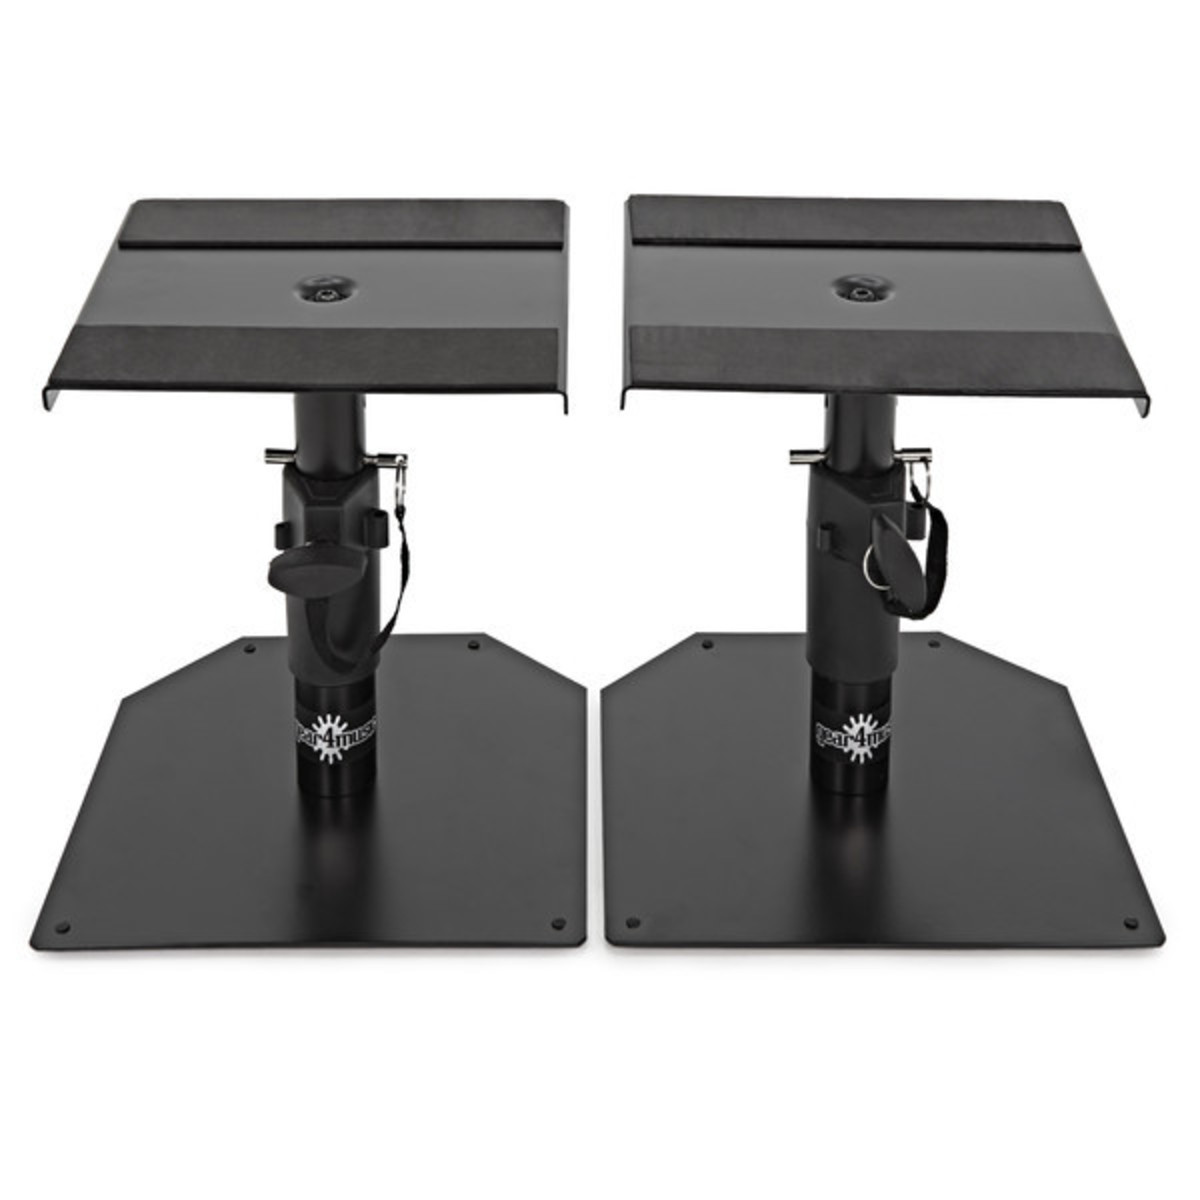 Studio Monitor Stand : adam a3x active studio monitors includes desktop monitor stands at ~ Russianpoet.info Haus und Dekorationen